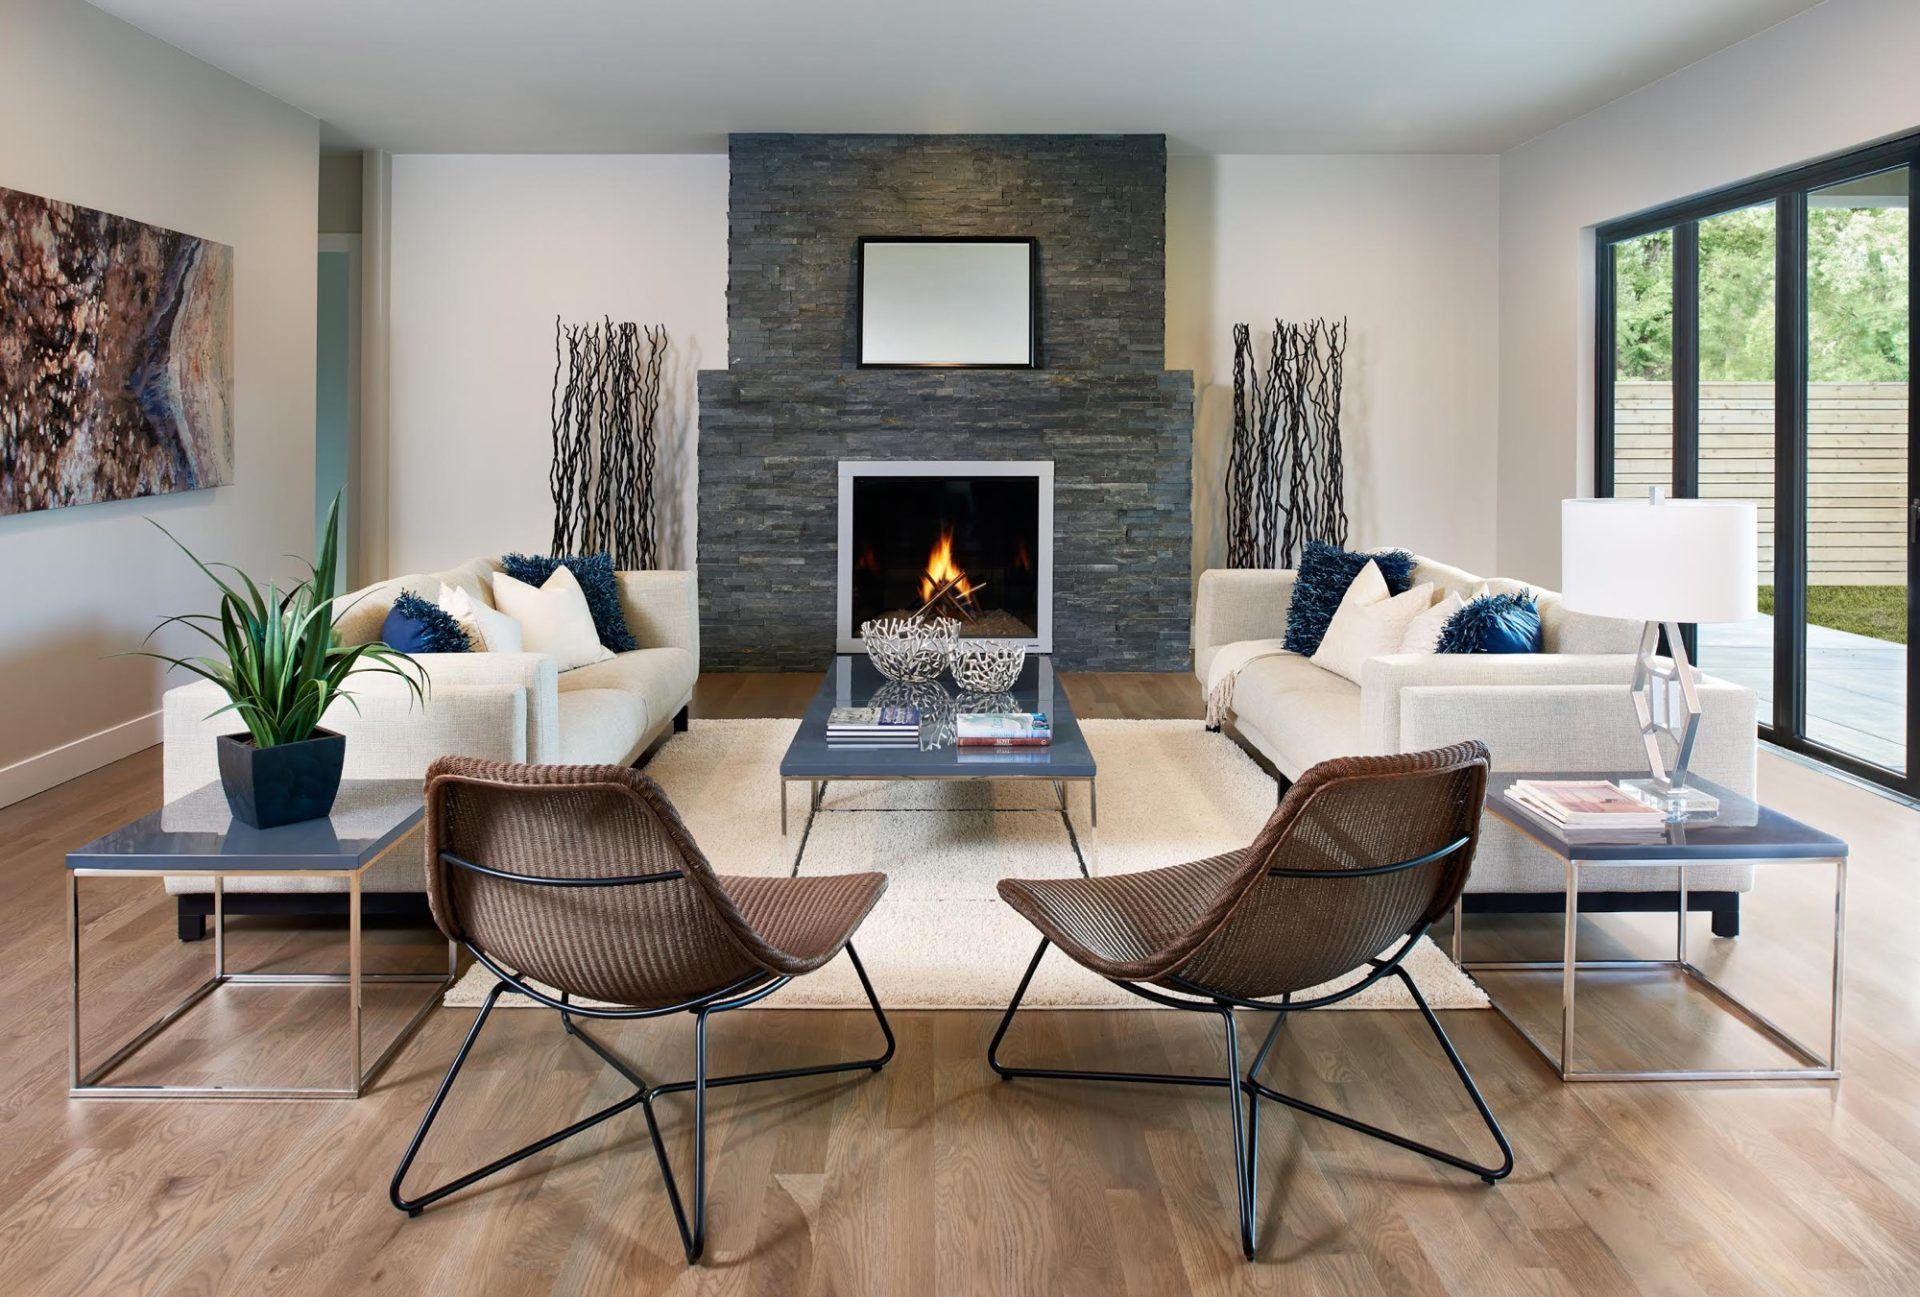 Home Staging Lyon. Impact Home Staging Experts The Betty Brigade ...